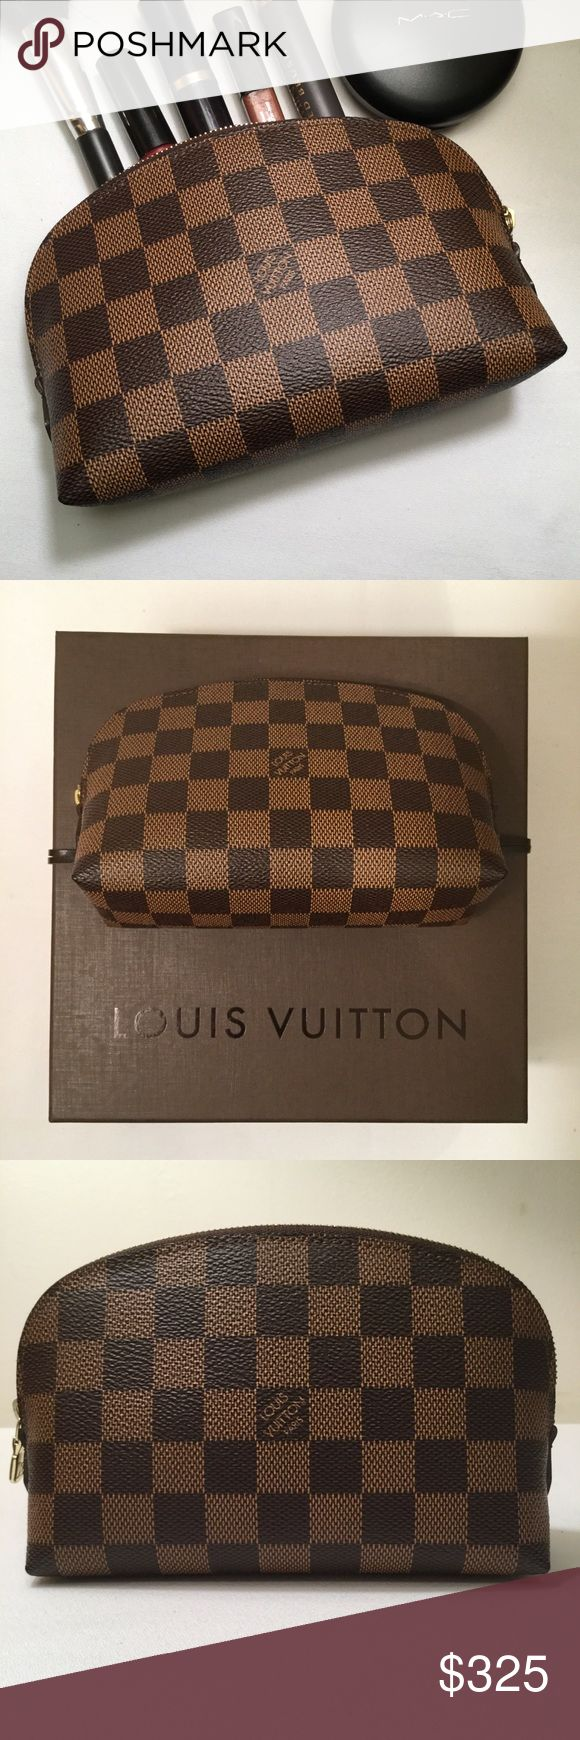 Louis Vuitton Damier Ebene Cosmetic Pouch PM Preloved